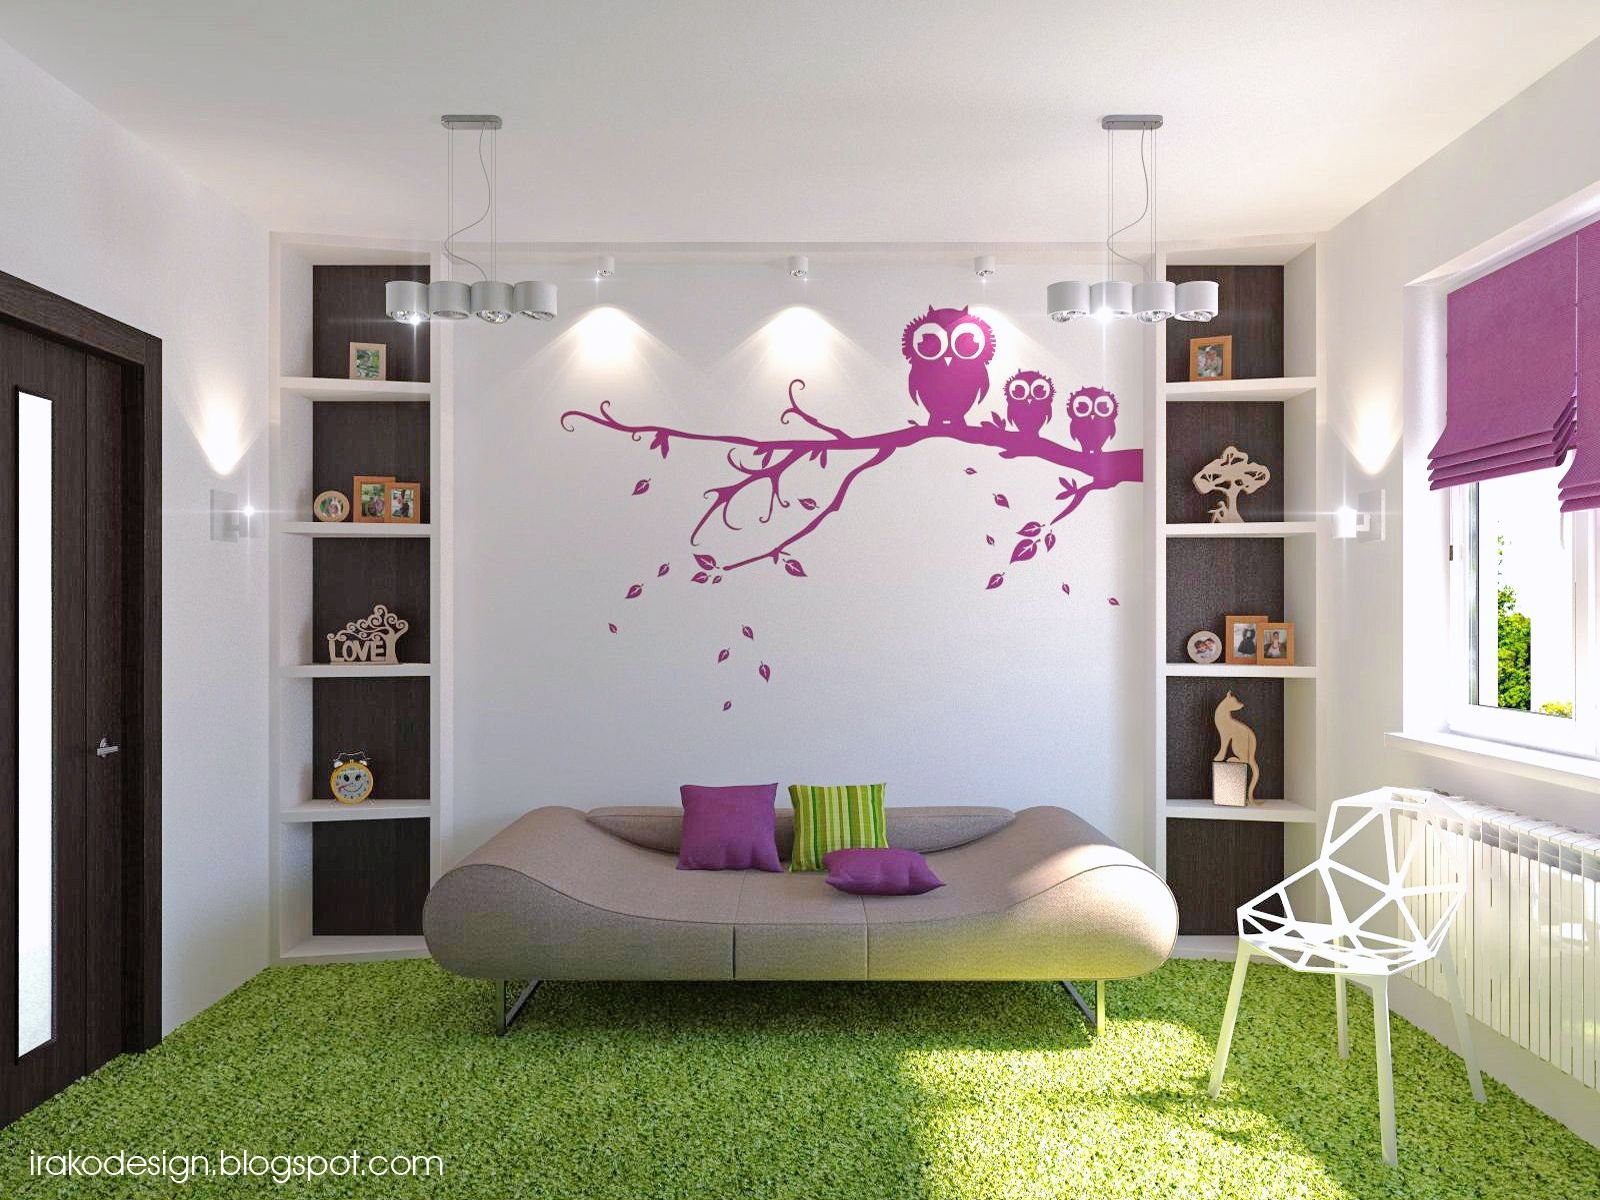 Cute bedroom ideas for teenage girls with small rooms - Girl Bedroom Ideas For Girl Bedrooms Eas Design Eas Above 4 Via Irako Design Girl Bedroom Eas As Little Beautiful Girls Bedroom